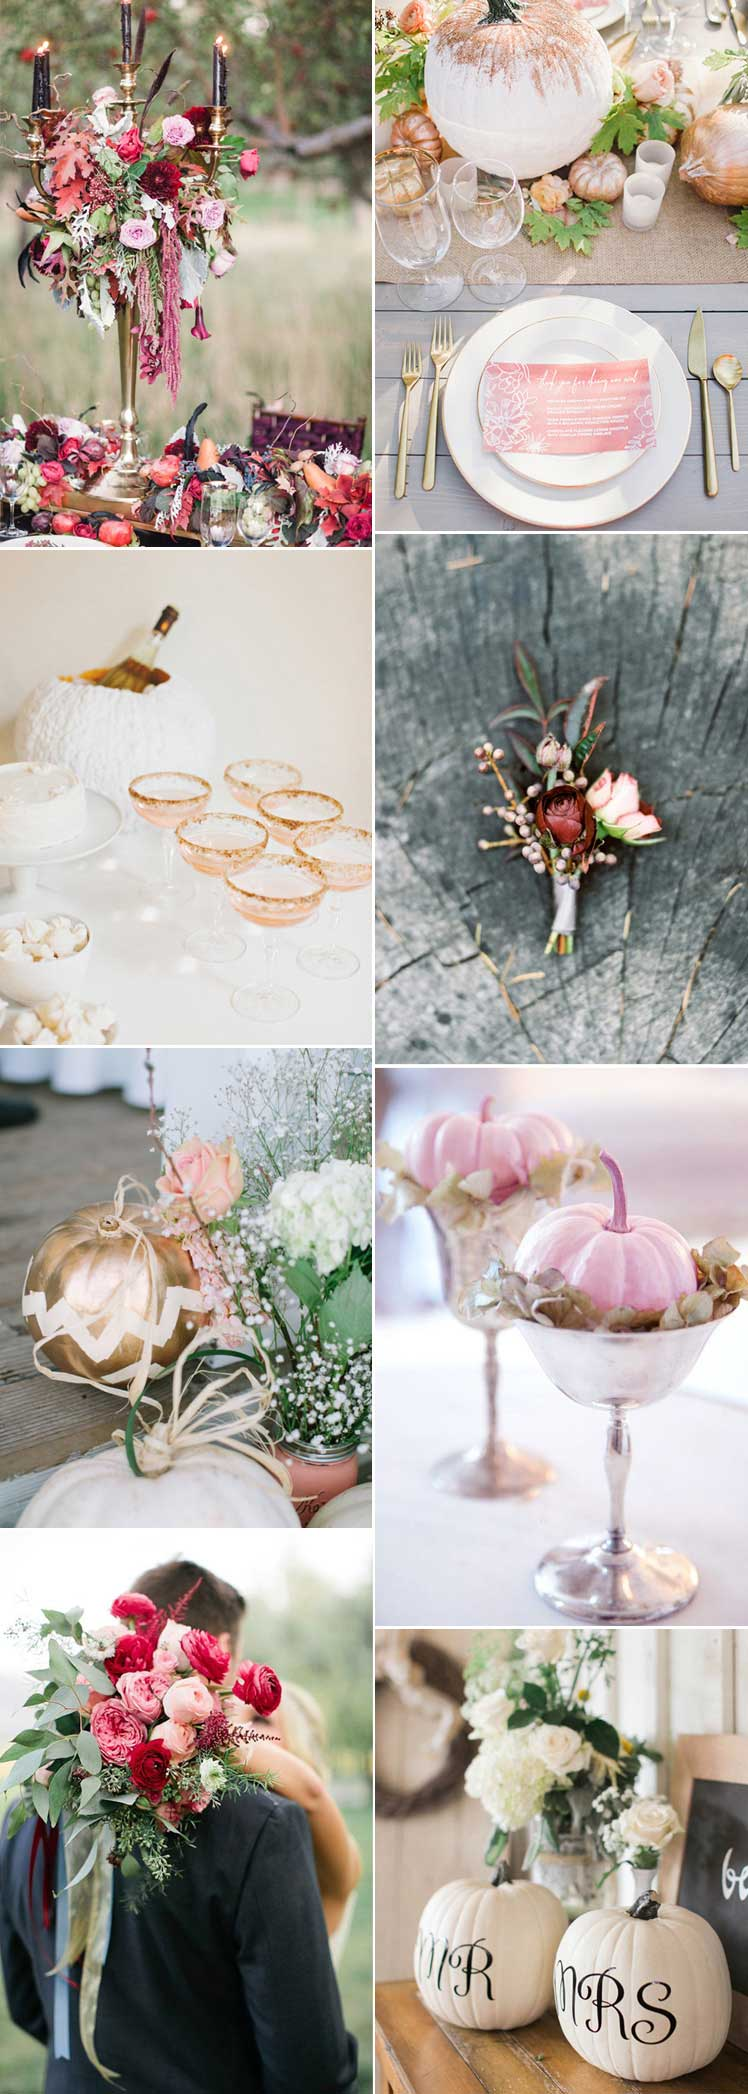 Halloween wedding ideas with a pretty style